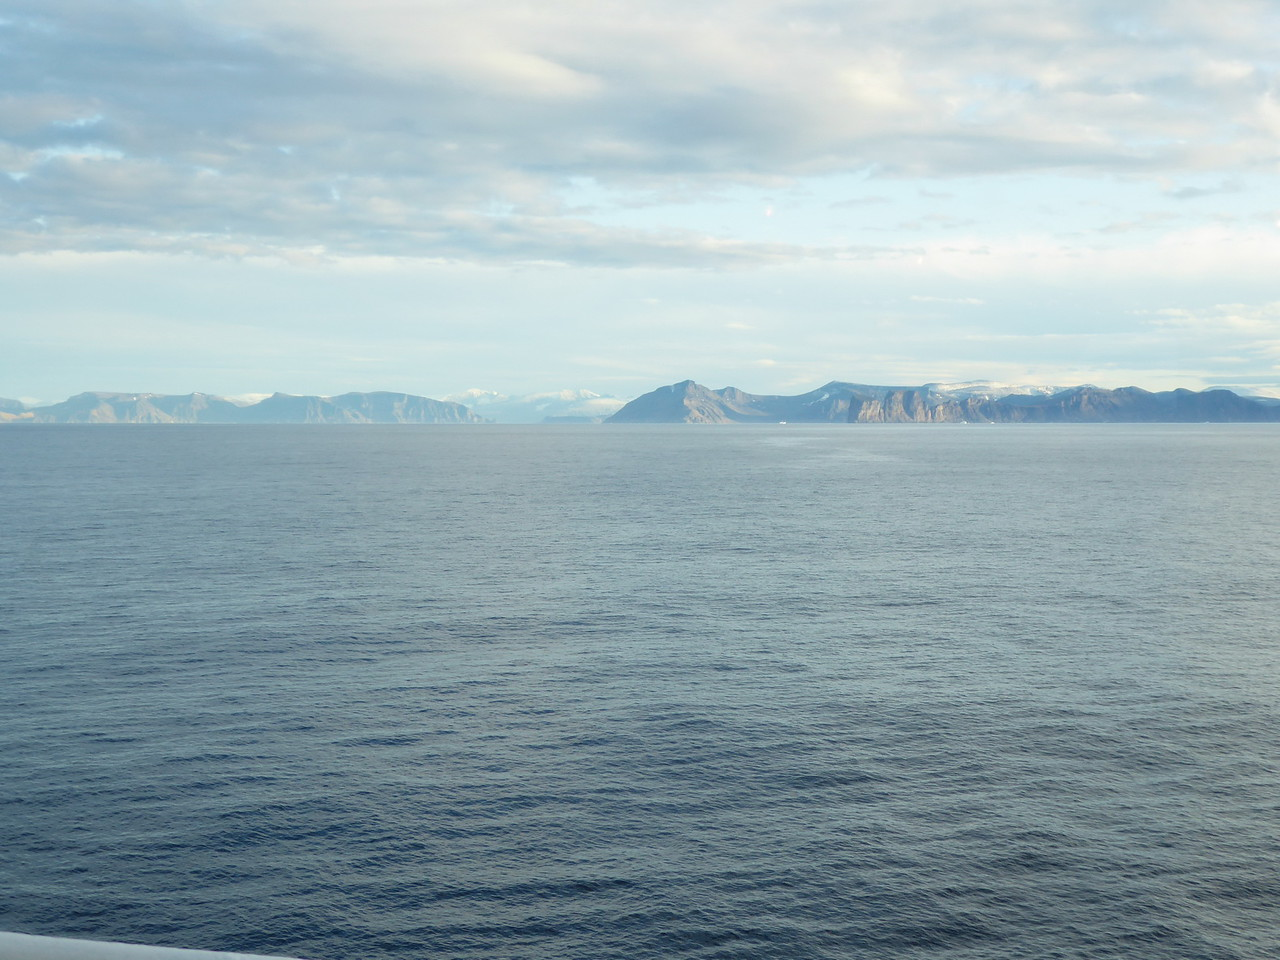 Looking at the edge of Baffin Island from Baffin Bay. Did you know that Baffin Island is twice the size of the UK?